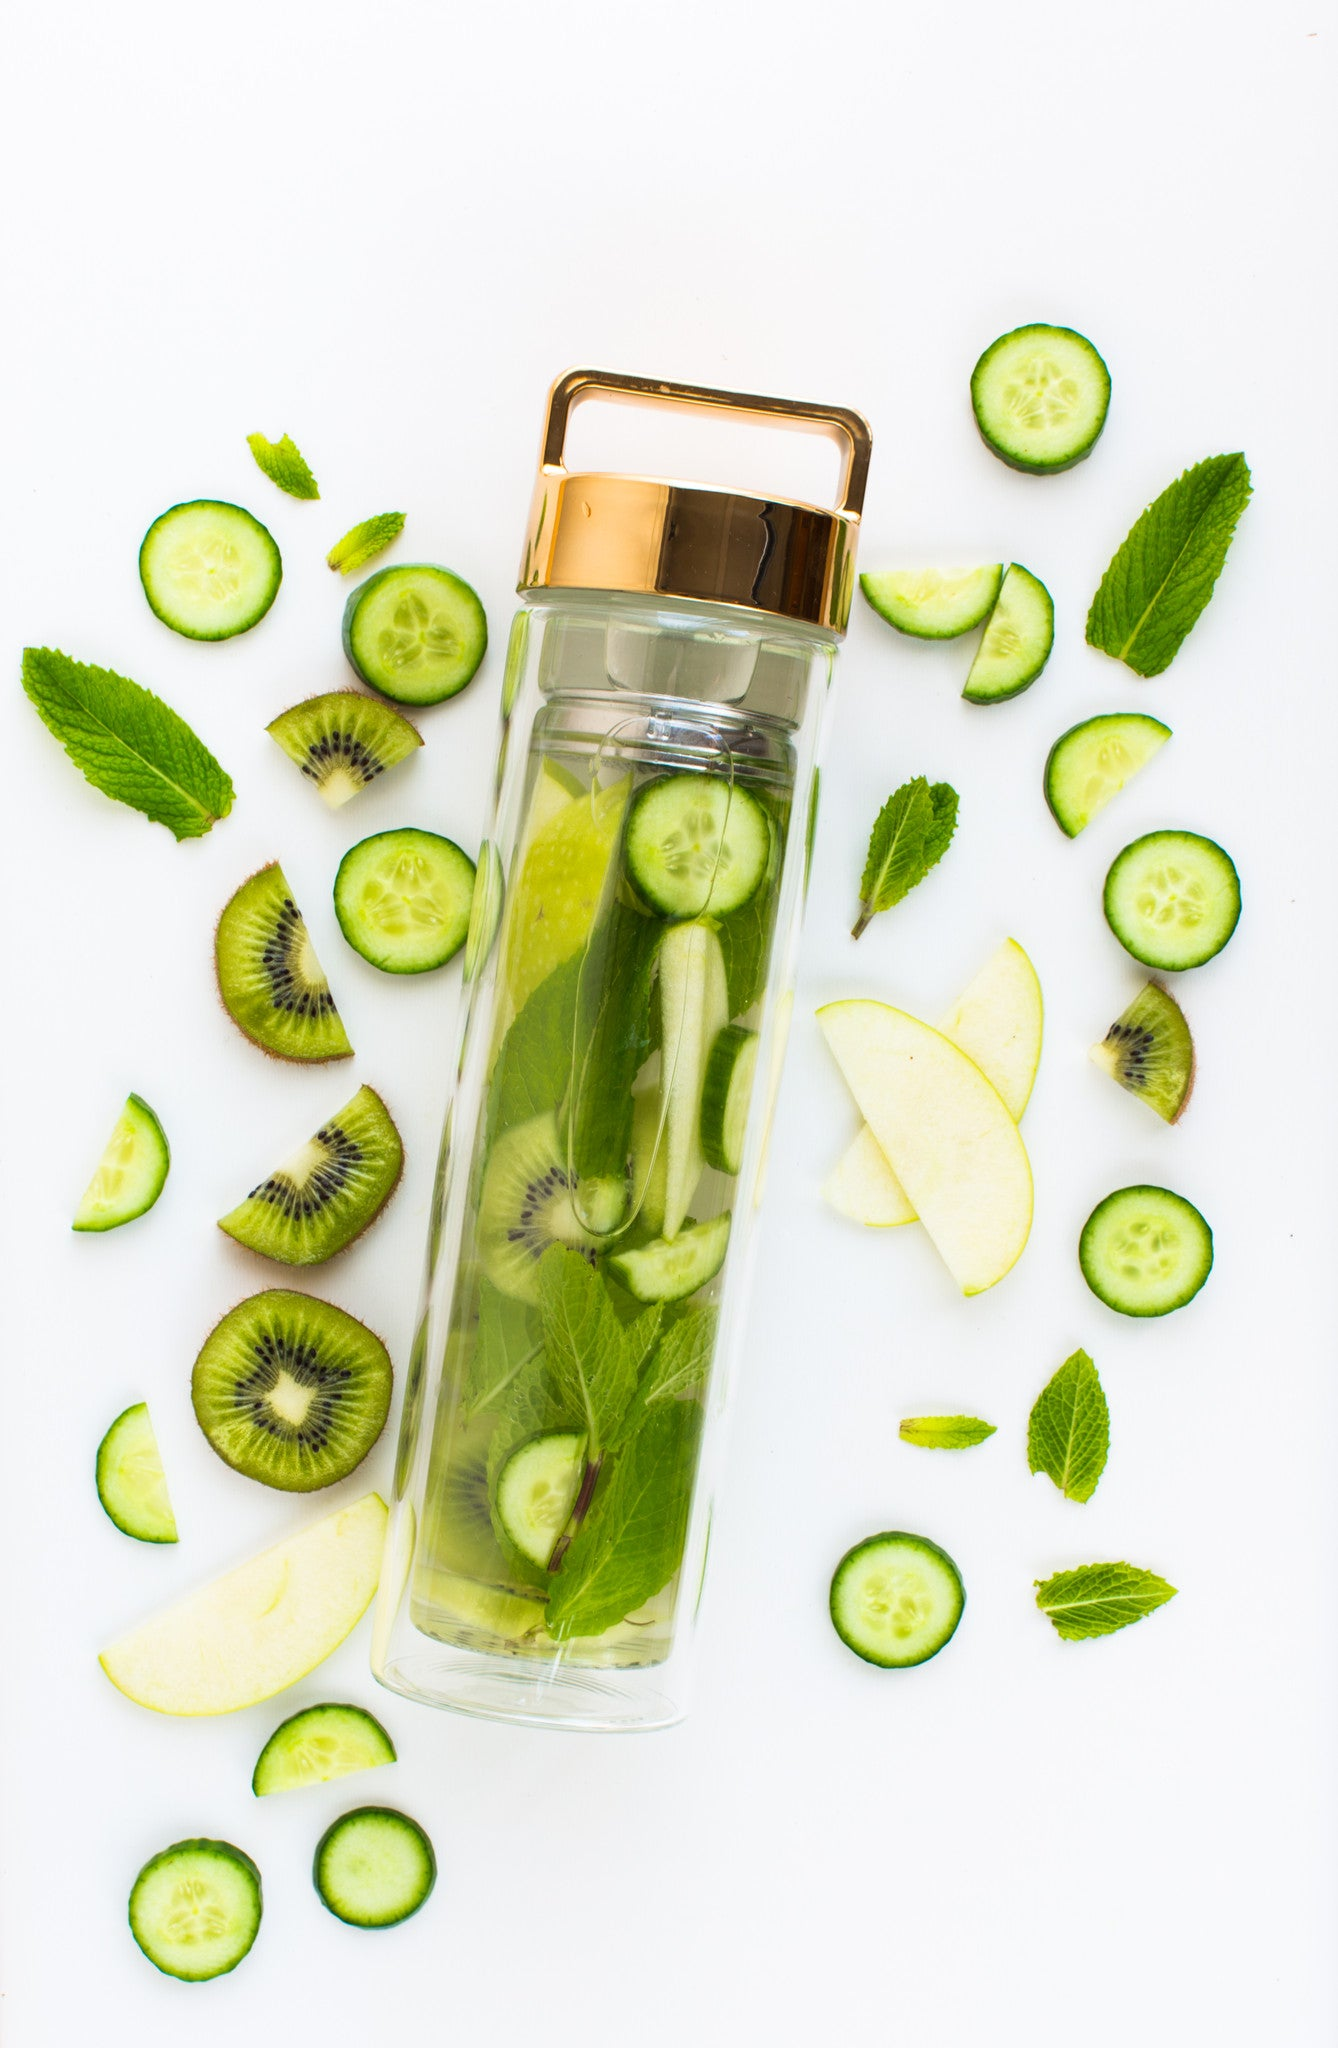 APPLE, KIWI, CUCUMBER AND MINT DETOX WATER // BY @8THANDLAKE